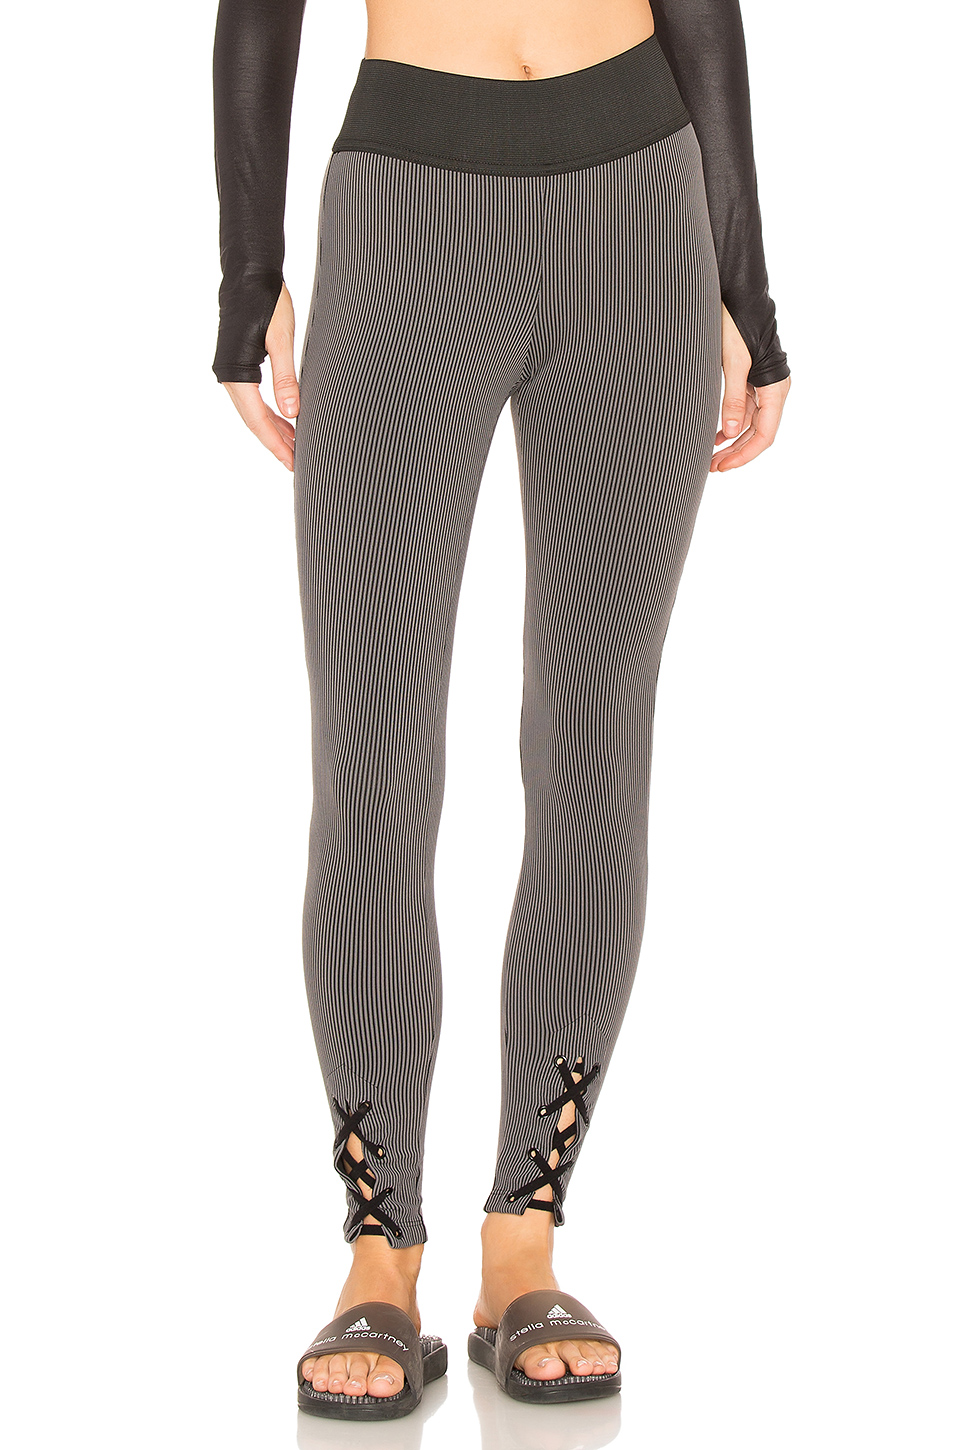 KORAL Session Legging in Steel